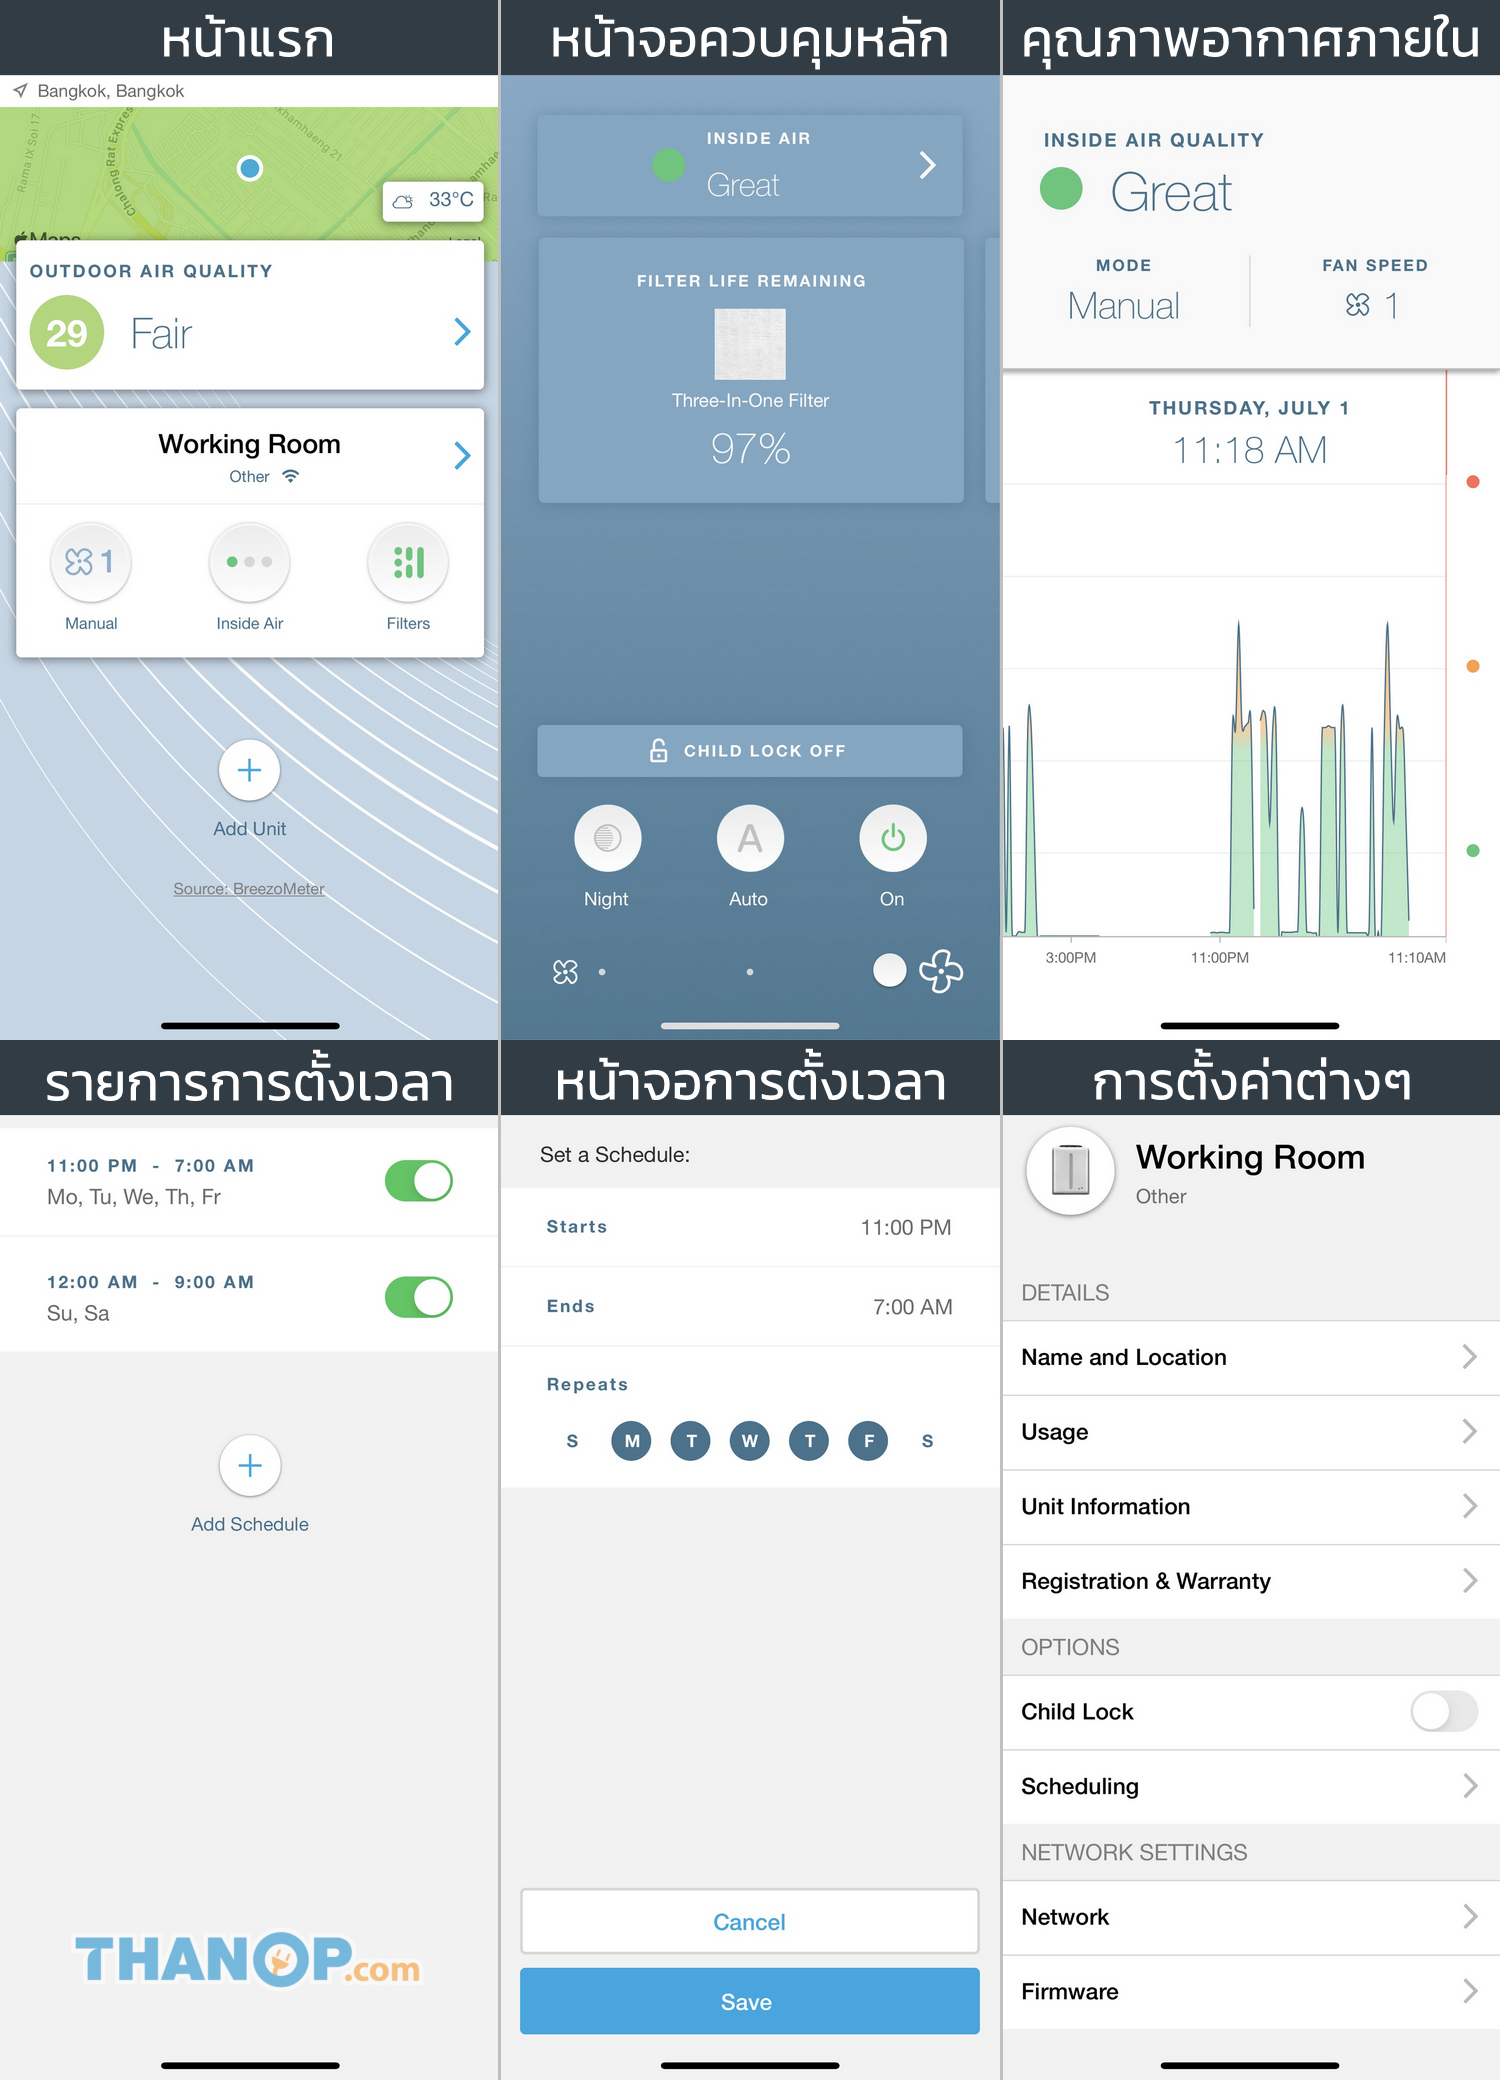 atmosphere-connect-app-interface-general-example-for-atmosphere-mini